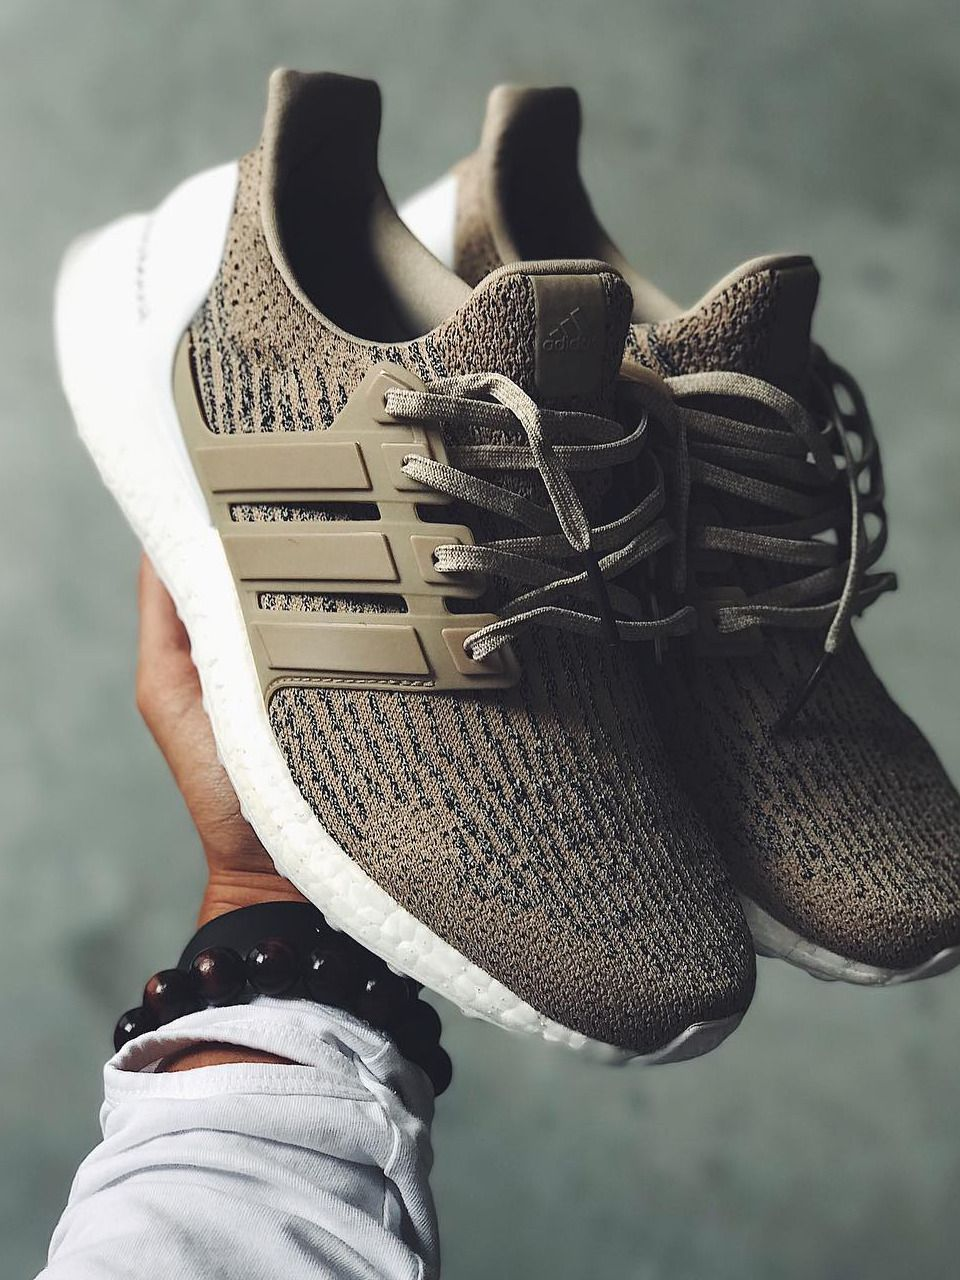 adc75908e6f1f Adidas Ultra Boost 3.0 - Trace Khaki sample (by joeymichael08) Keep kicks  fresh with Sole Trees PRM shoe tree  ShoeTree  SoleTrees  ShoeTrees